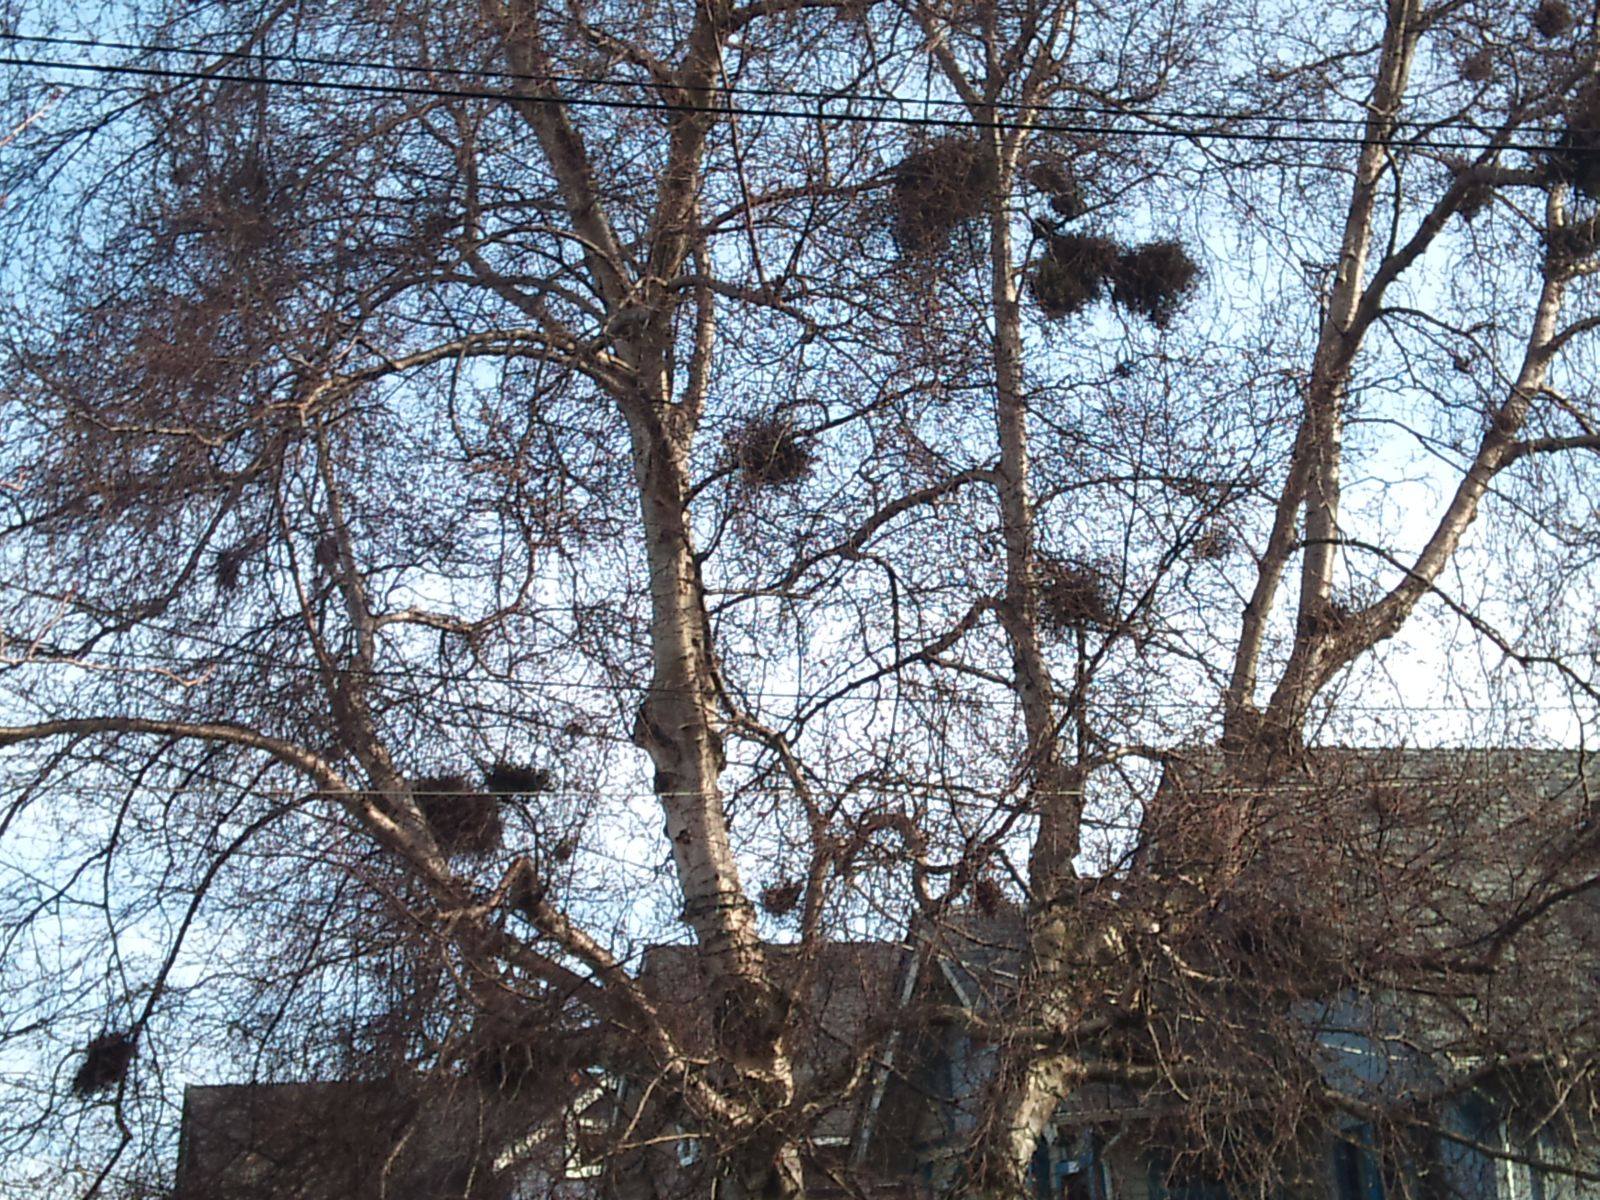 have seen nests in trees. 1600 x 1200.Pubic Hairstyles Images